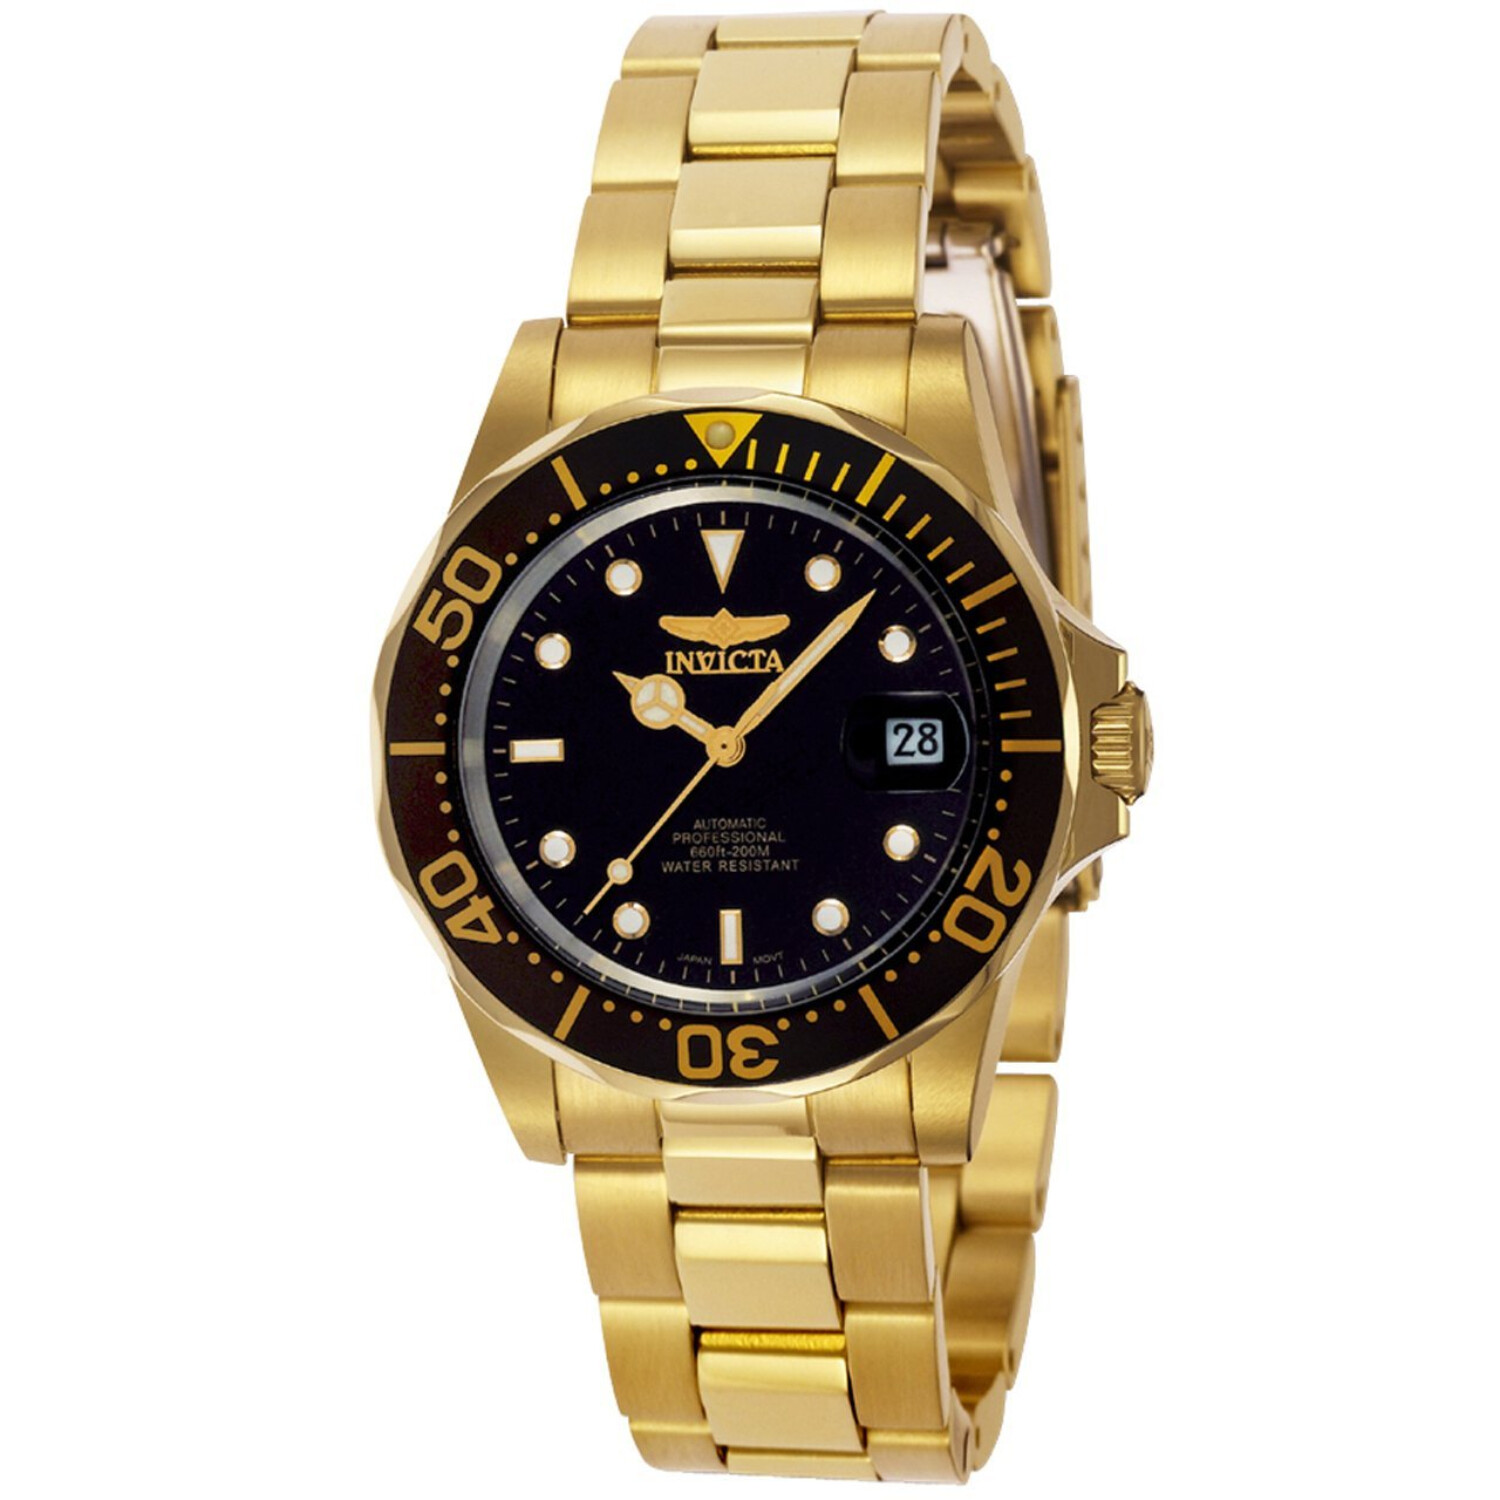 Invicta Men's Pro Diver 8929 Gold Stainless-Steel Plated Automatic Self Wind Diving Watch